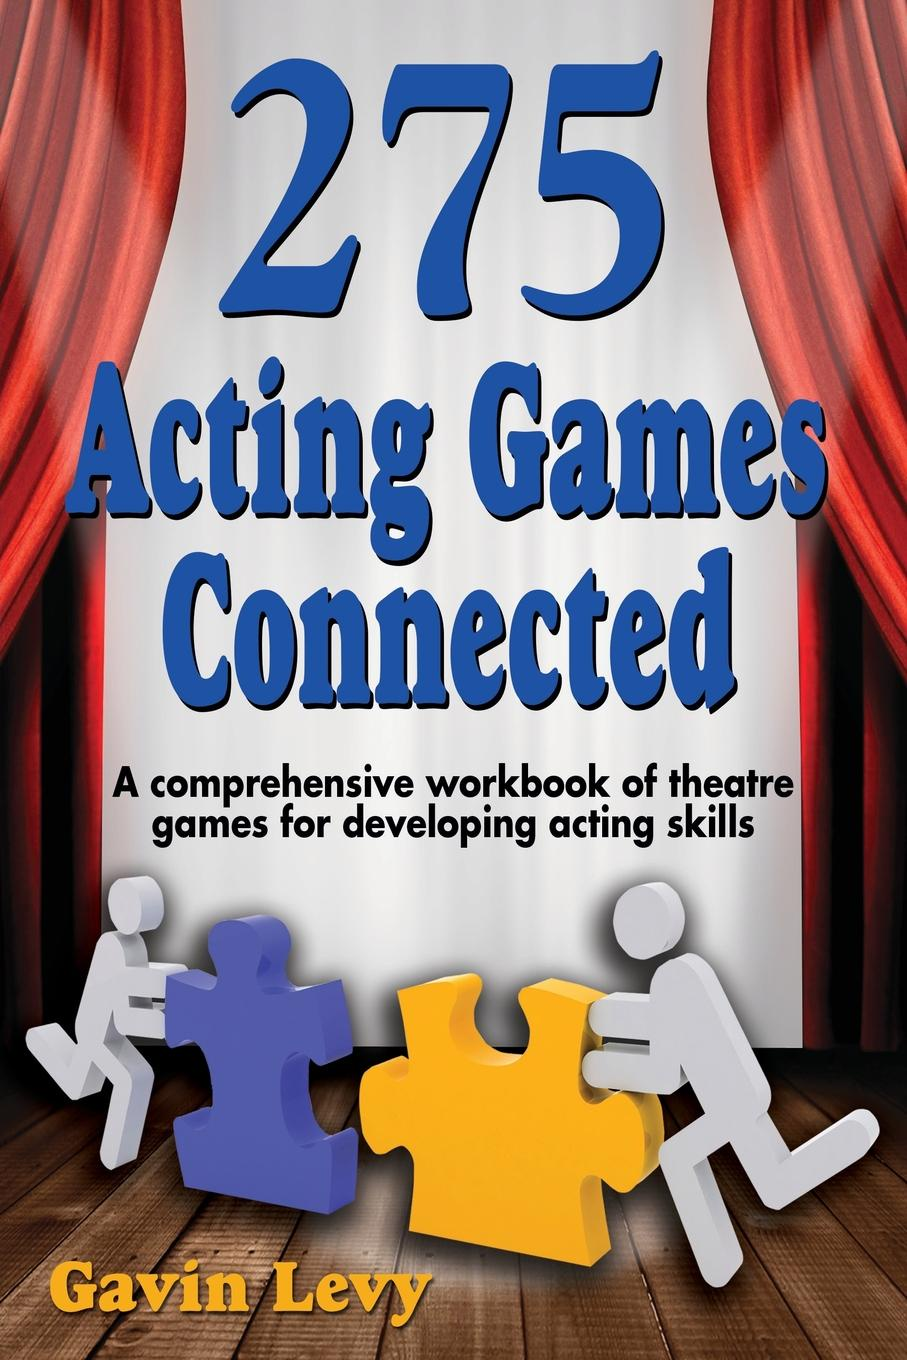 Gavin Levy 275 Acting Games. Connected. A Comprehensive Workbook of Theatre Games for Developing Acting Skills david ciccarelli voice acting for dummies